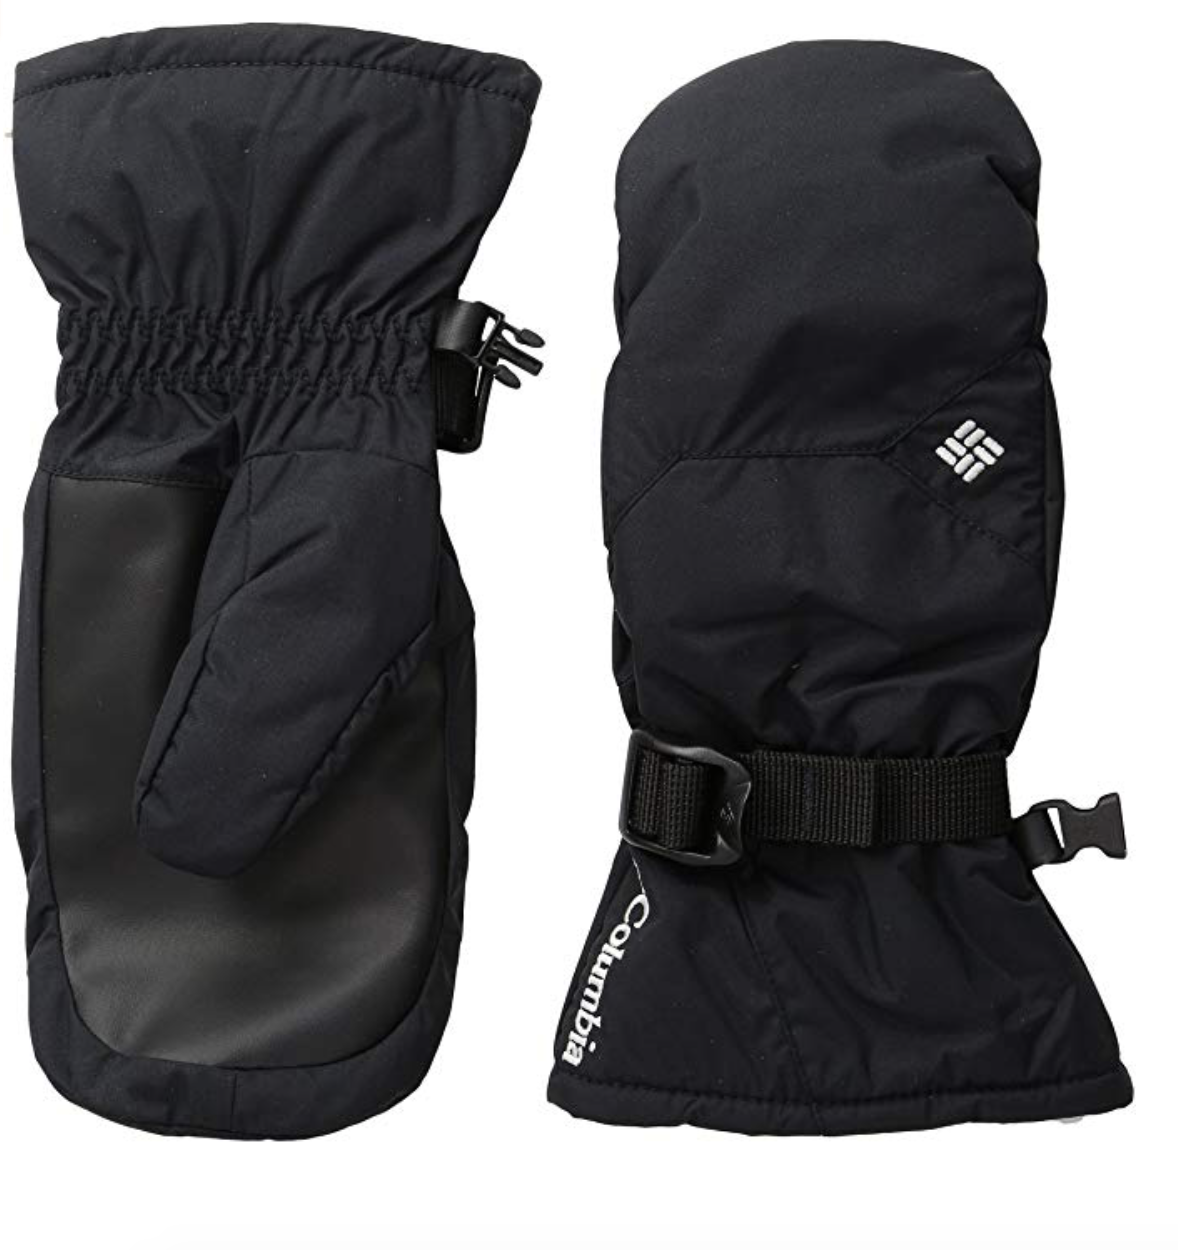 Columbia Whirlibird Youth Ski Mittens